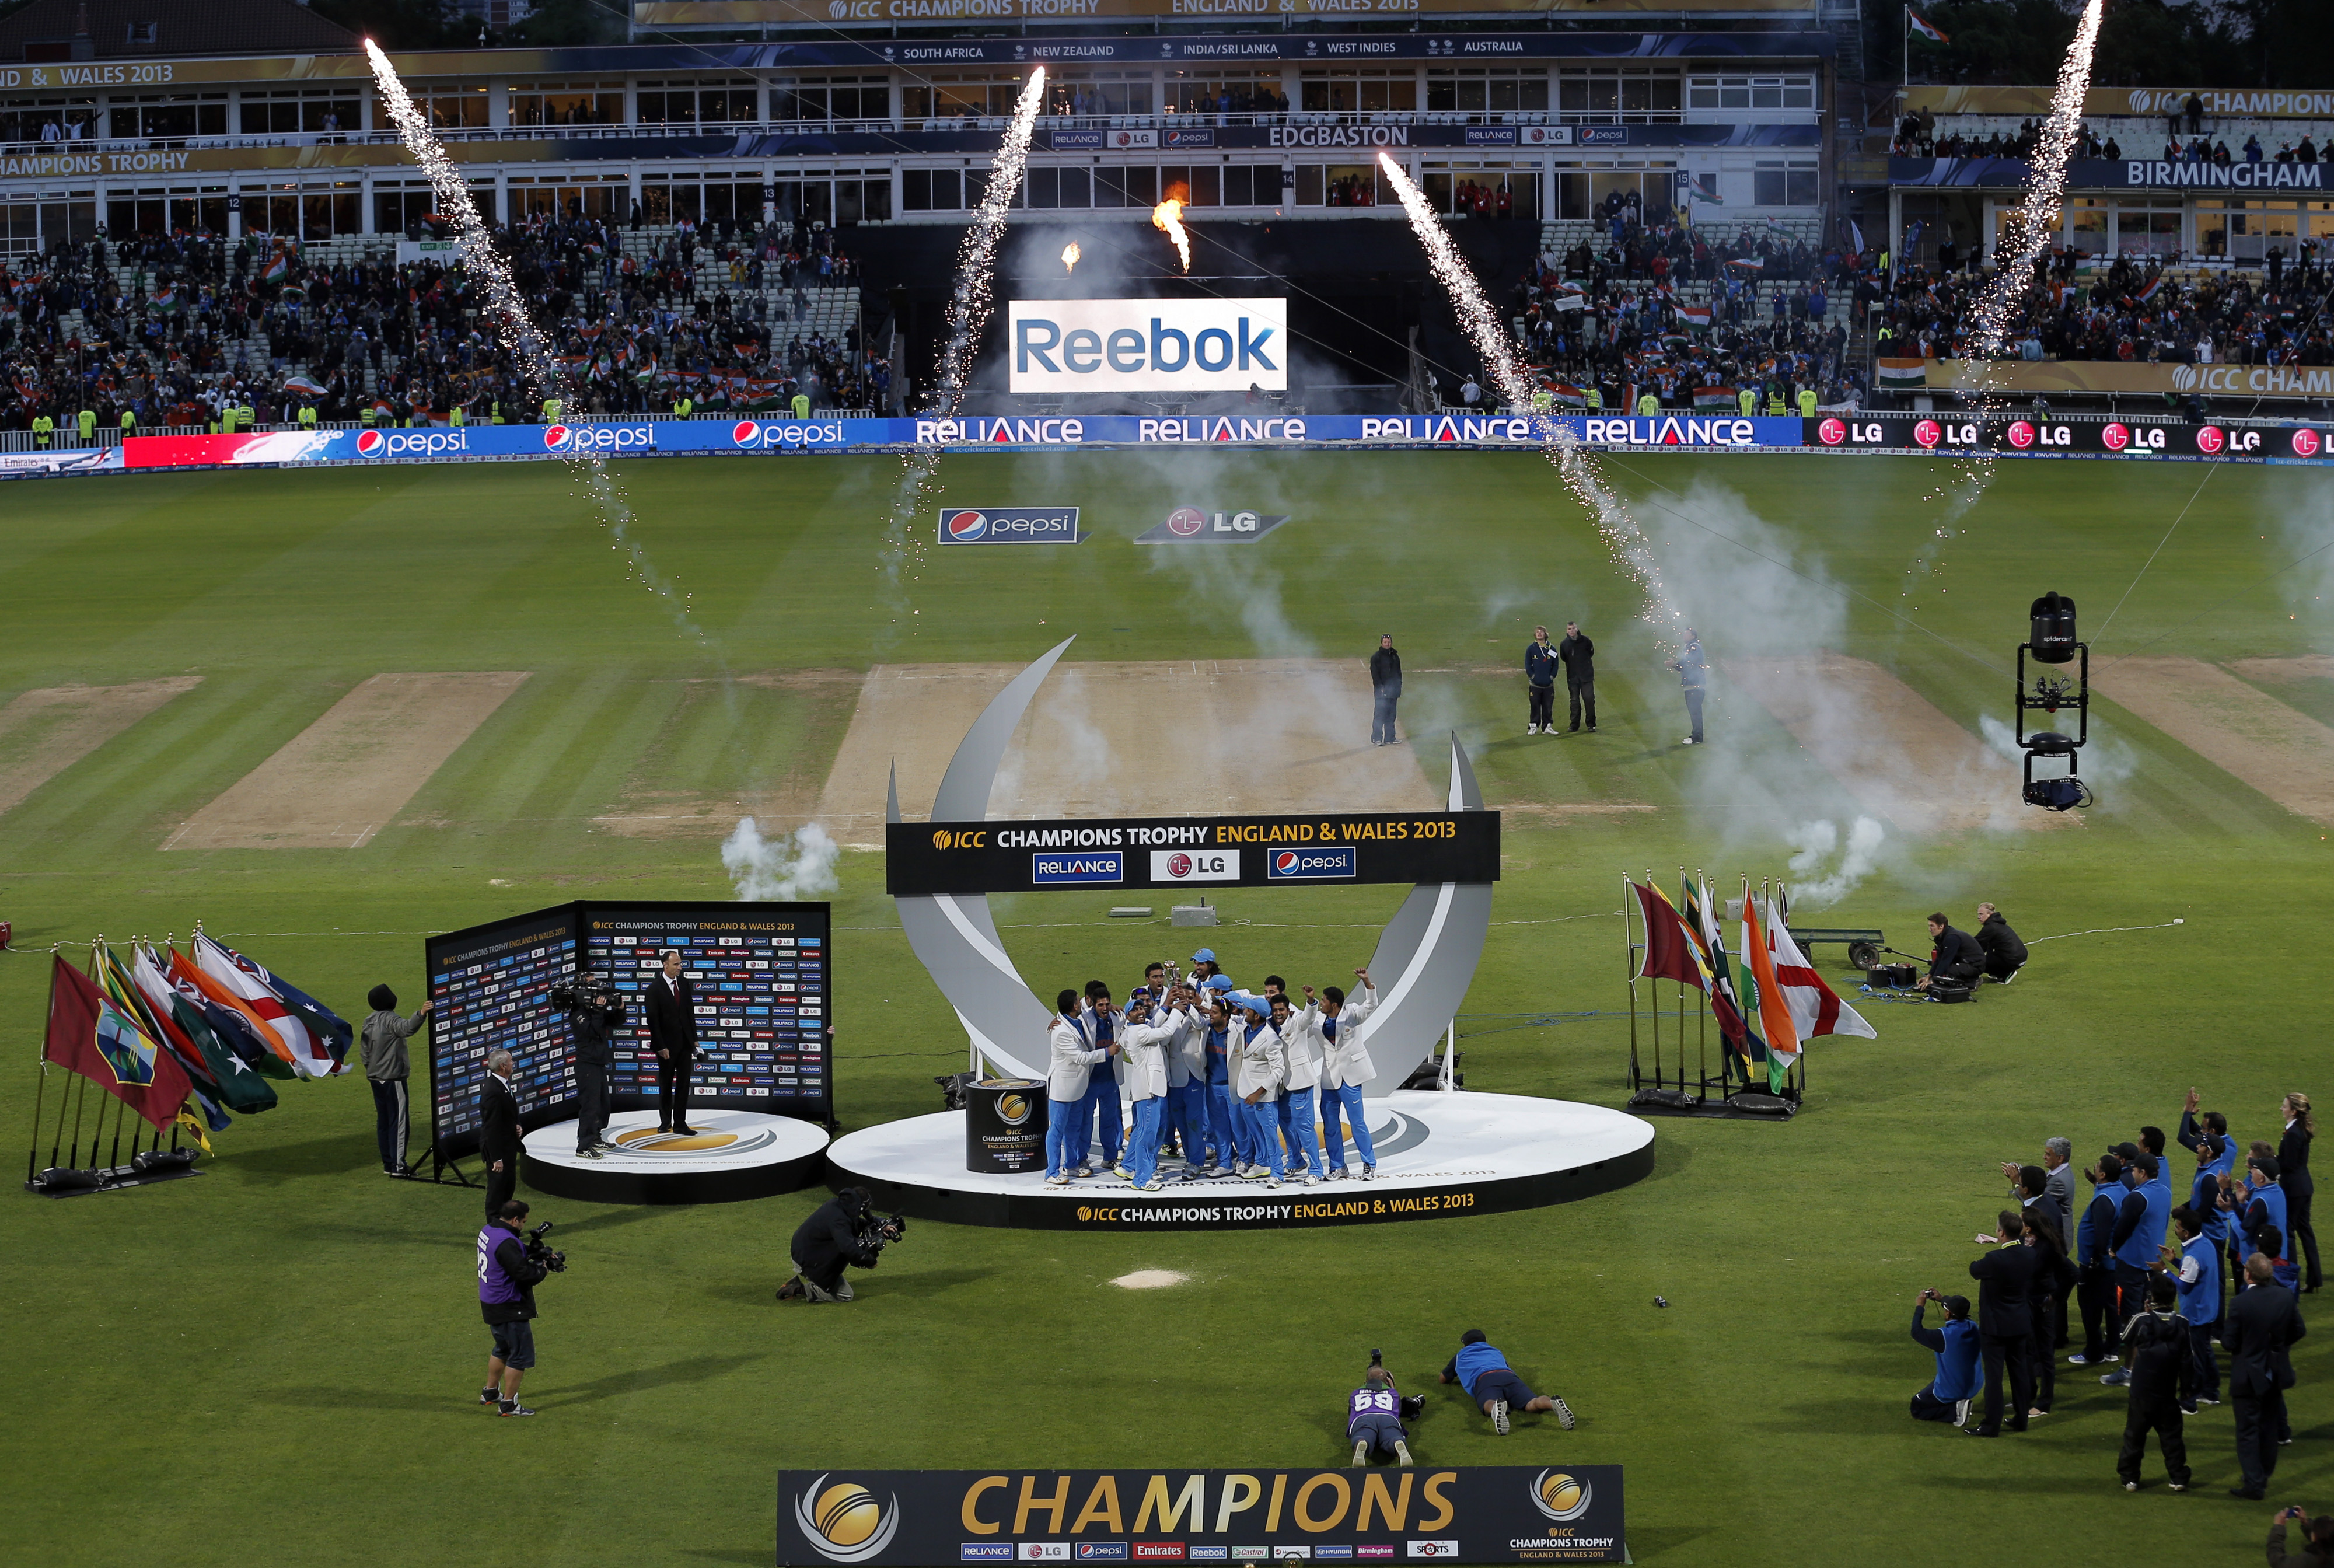 edgbaston secures temporary stand to bolster capacity for